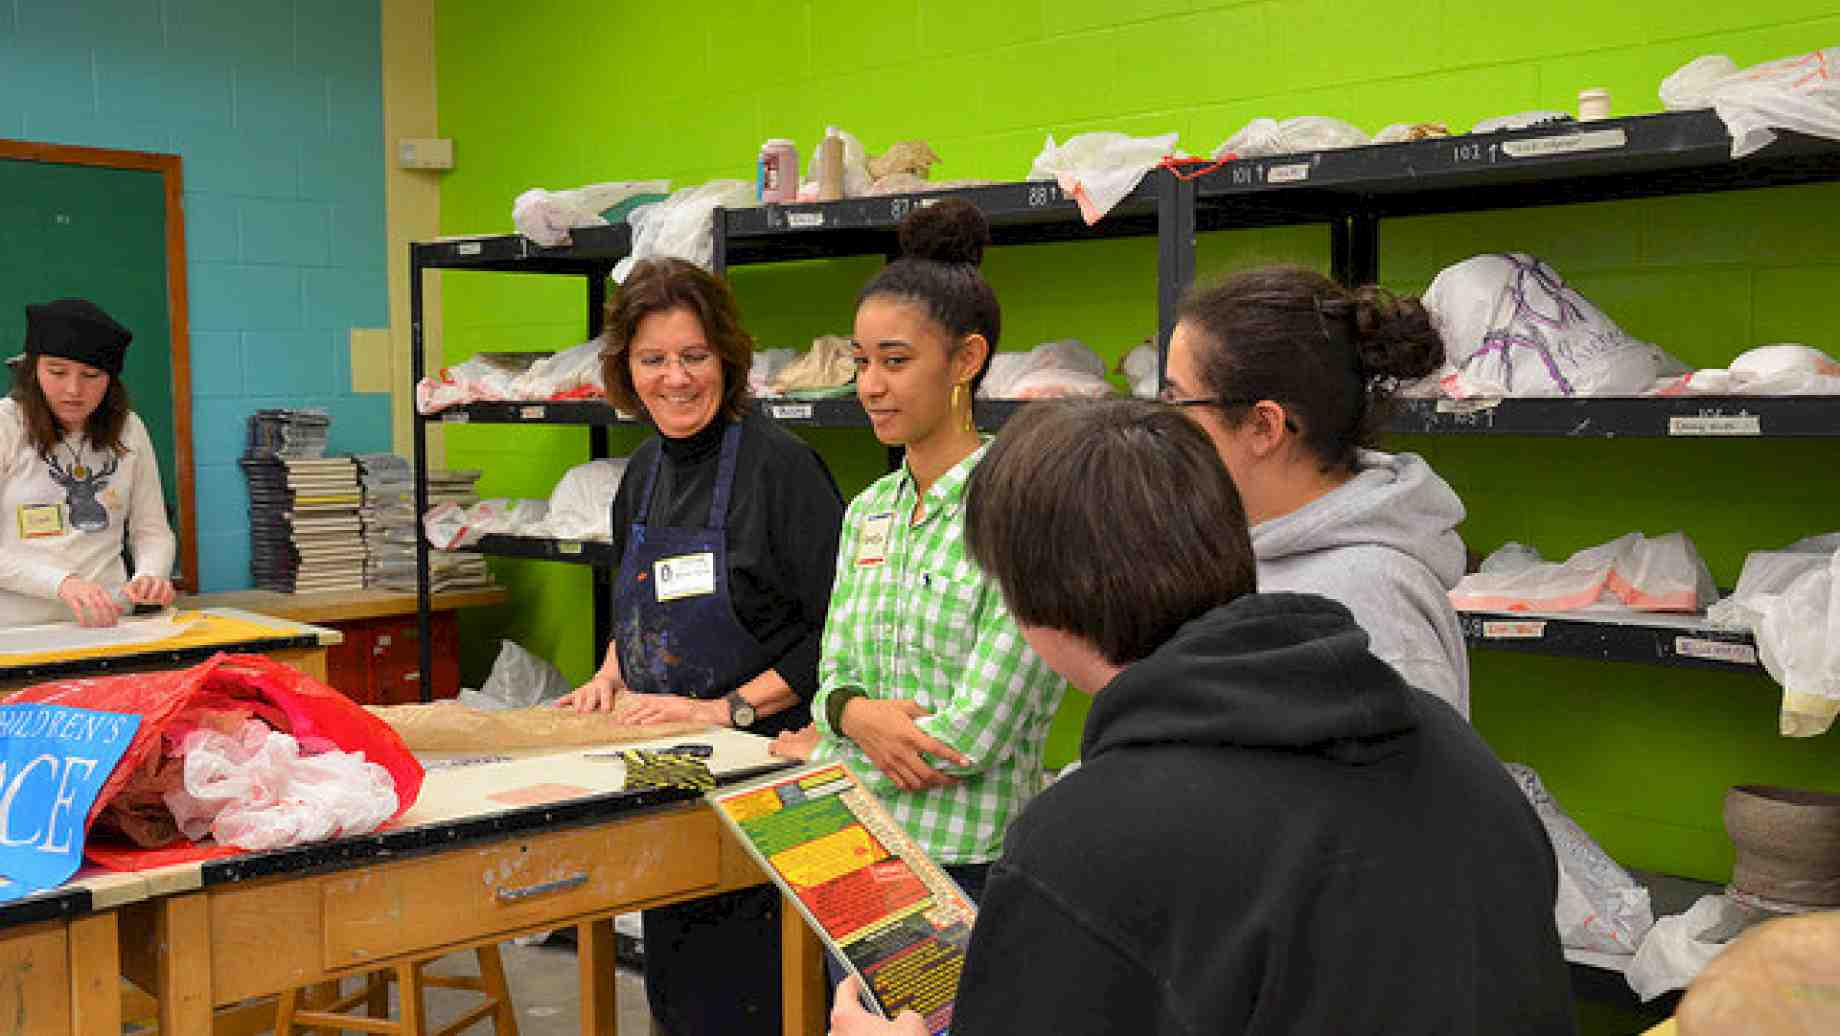 Art education faculty member, Michelle Tillander working with local high school students during a field experience